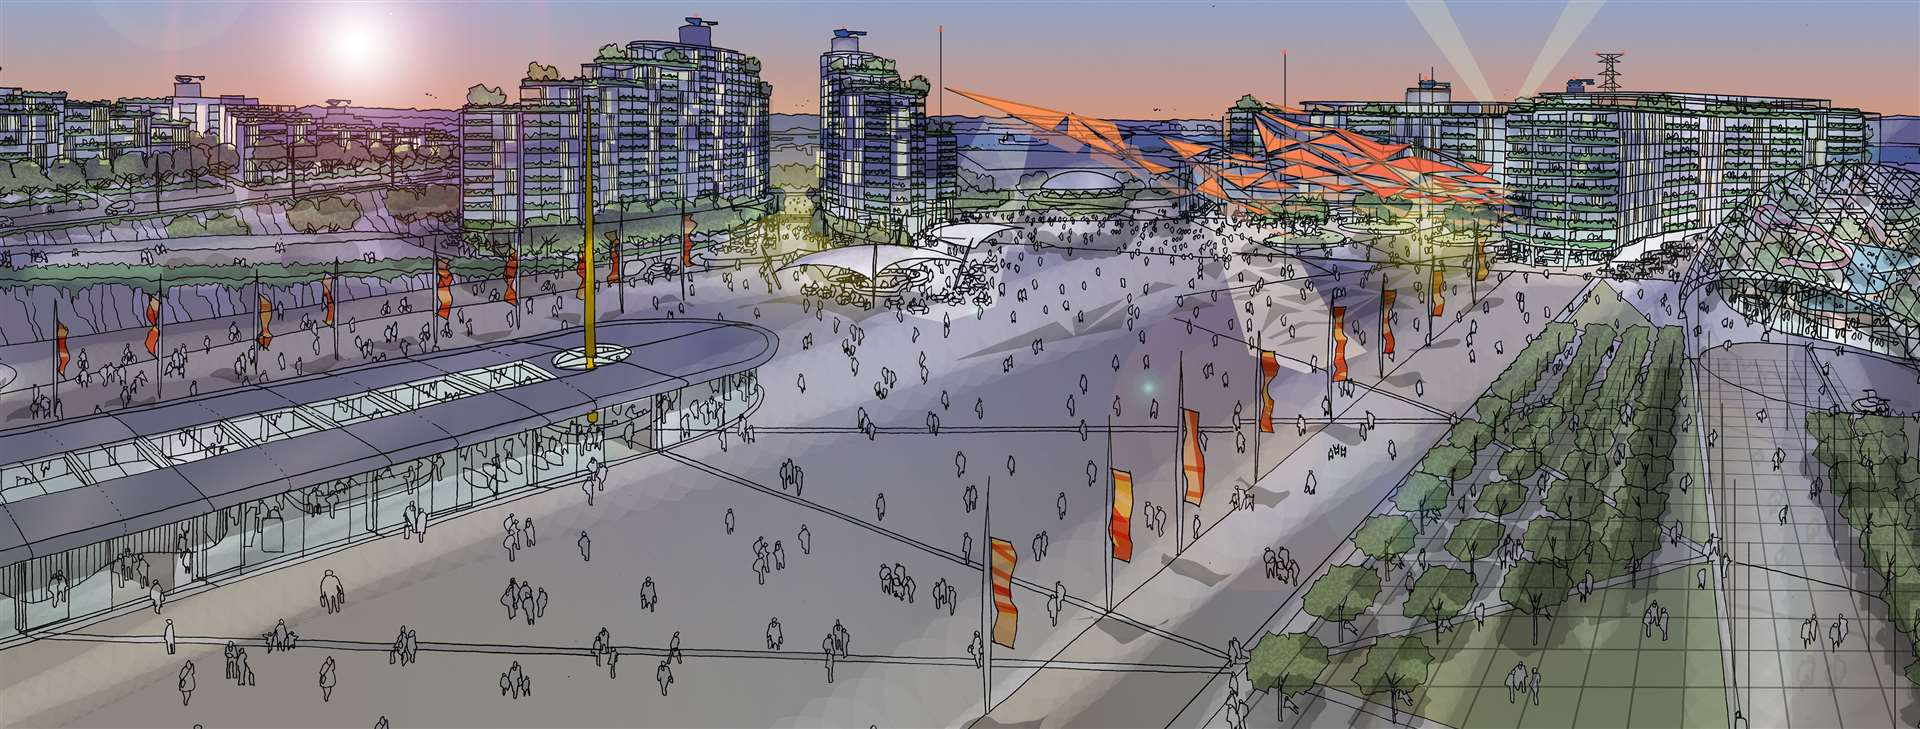 Artist impression of how the Arrival Plaza, hotels and market. Picture: The London Resort